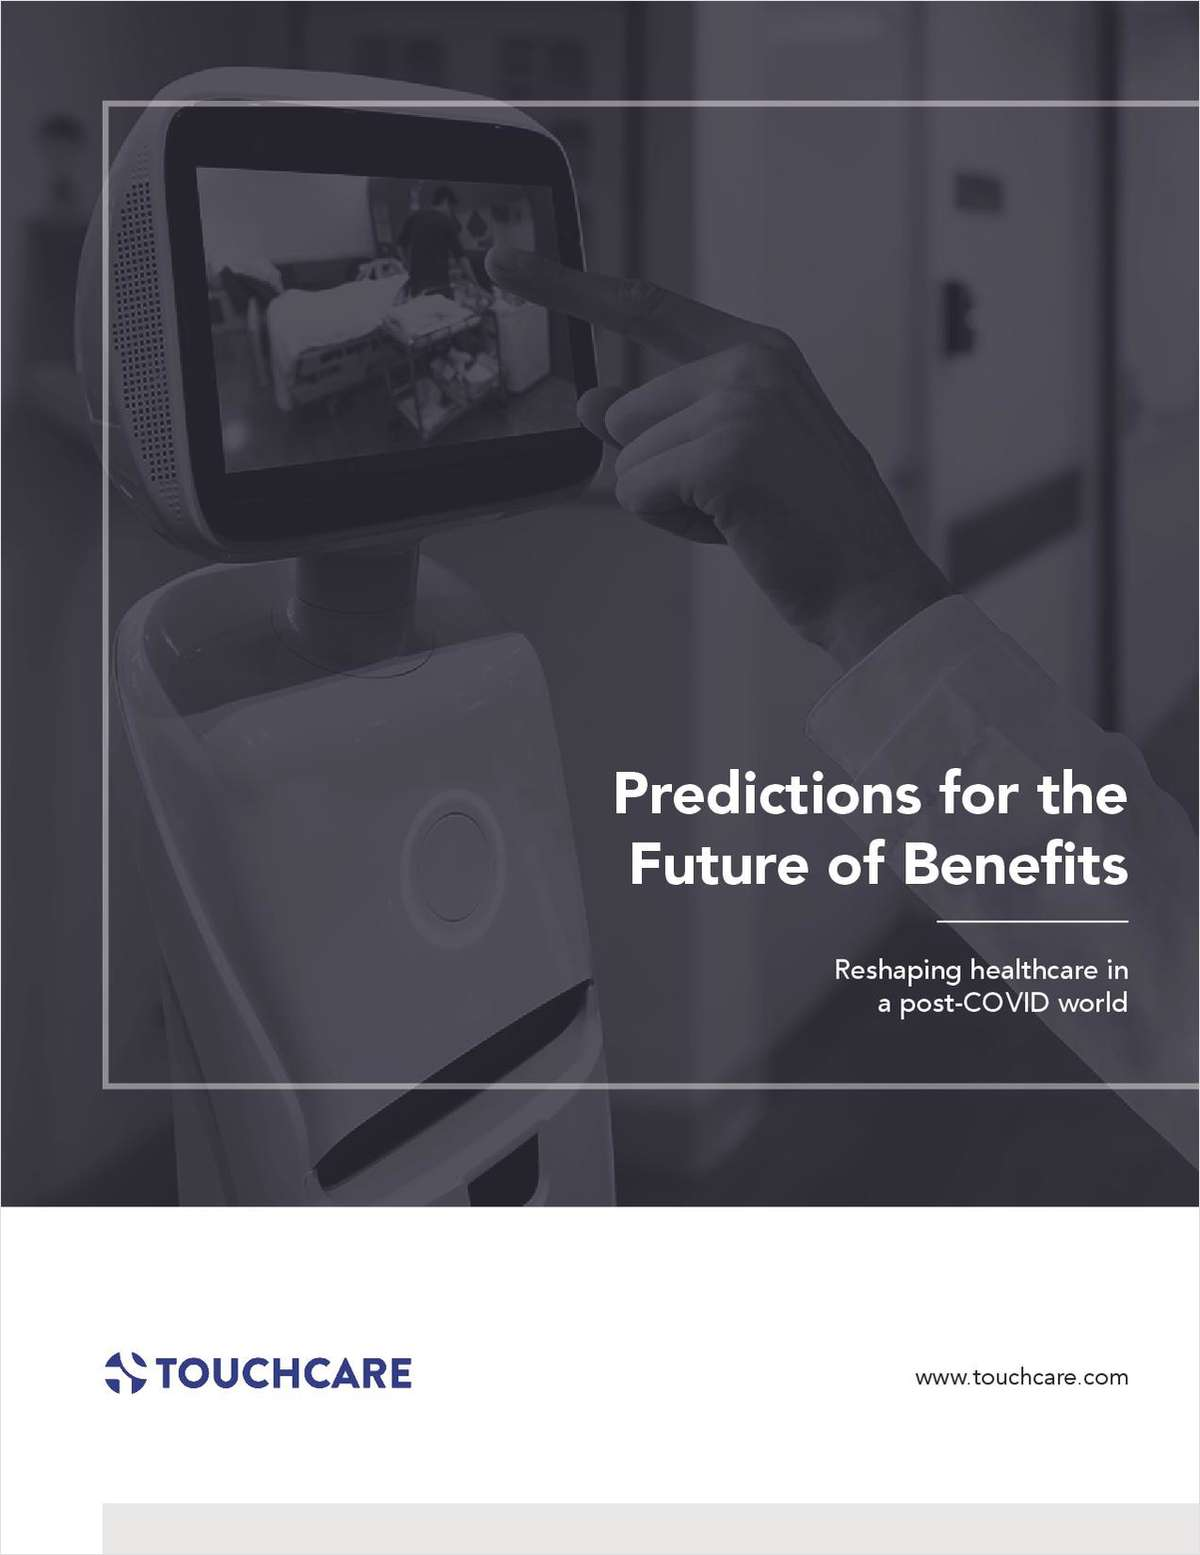 Predictions for the Future of Benefits: Reshaping Healthcare in a Post-COVID World